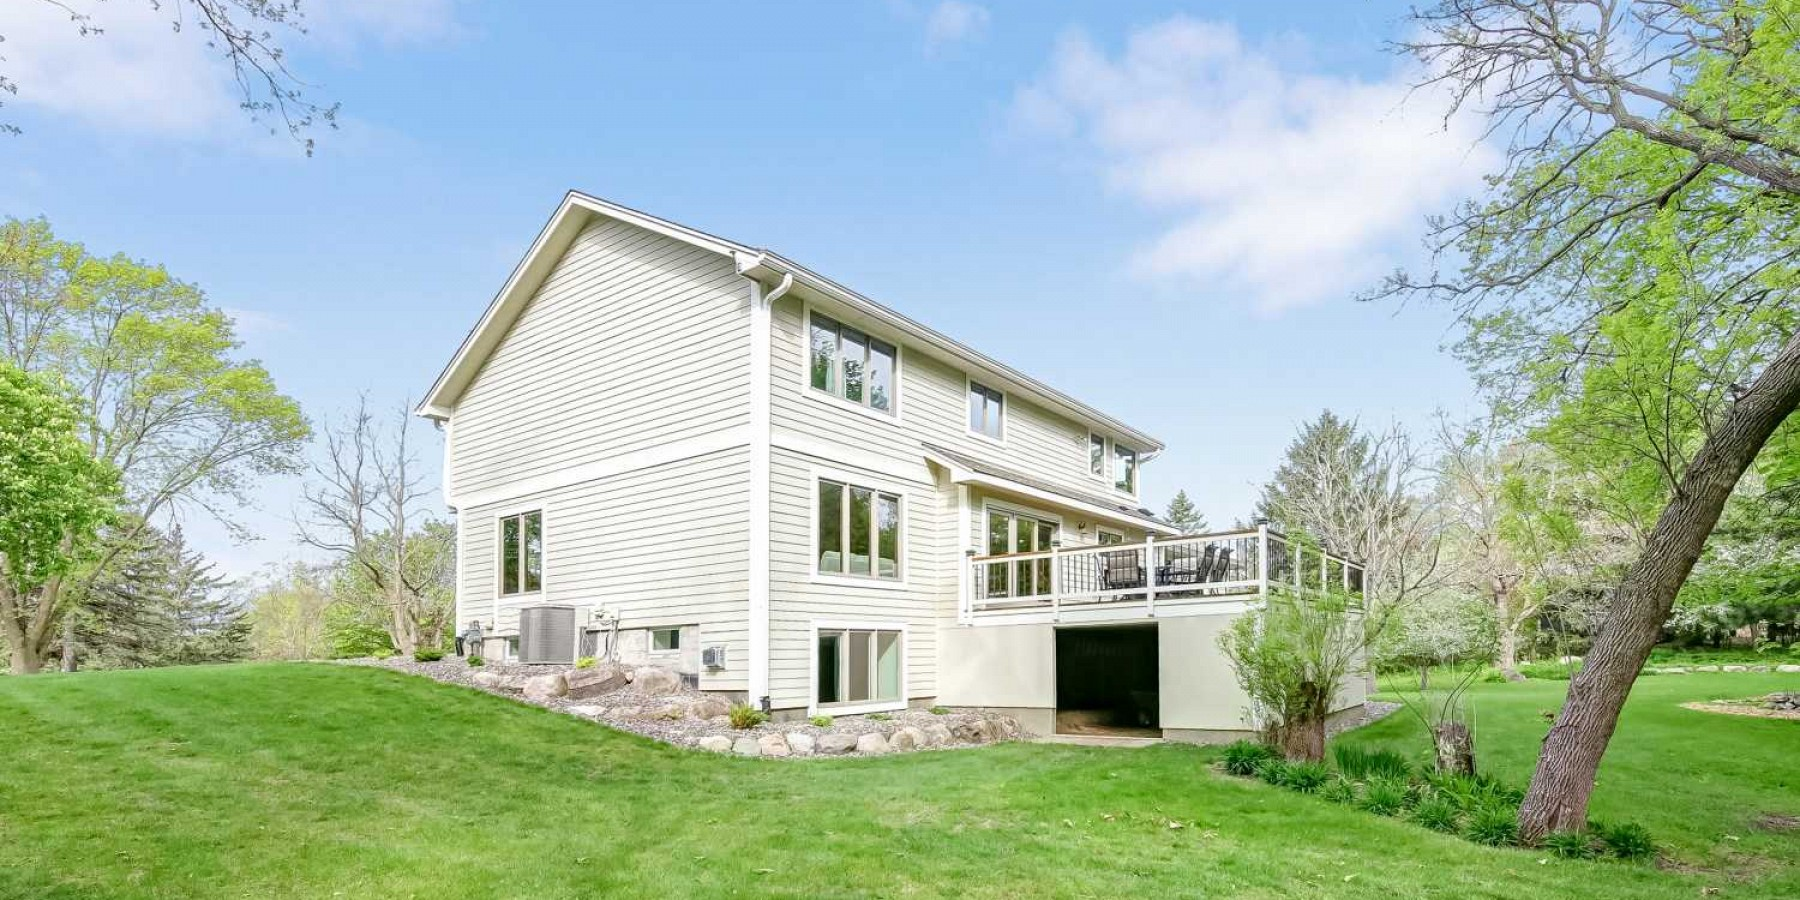 680 MINNETONKA HIGHLANDS LANE, ORONO, MN 55356